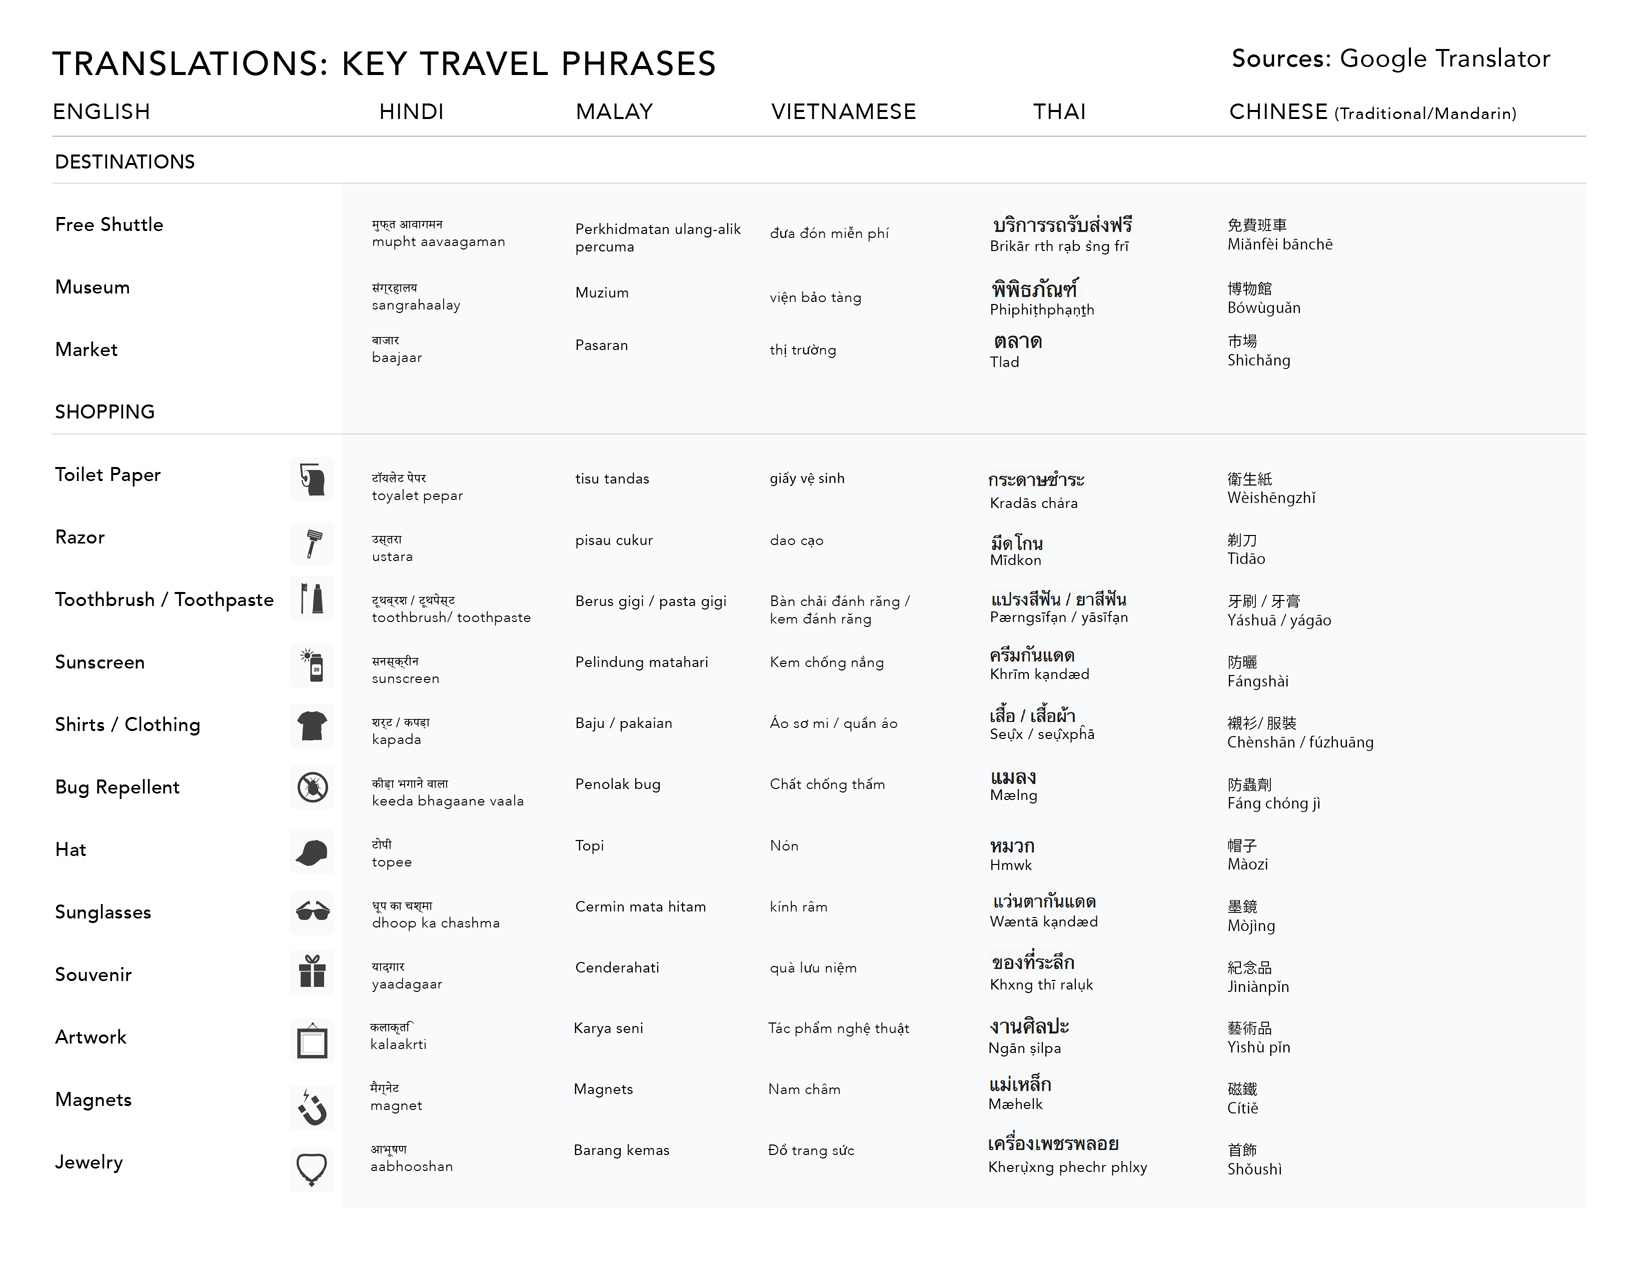 Travel translations, key phrases for Asia, page 2